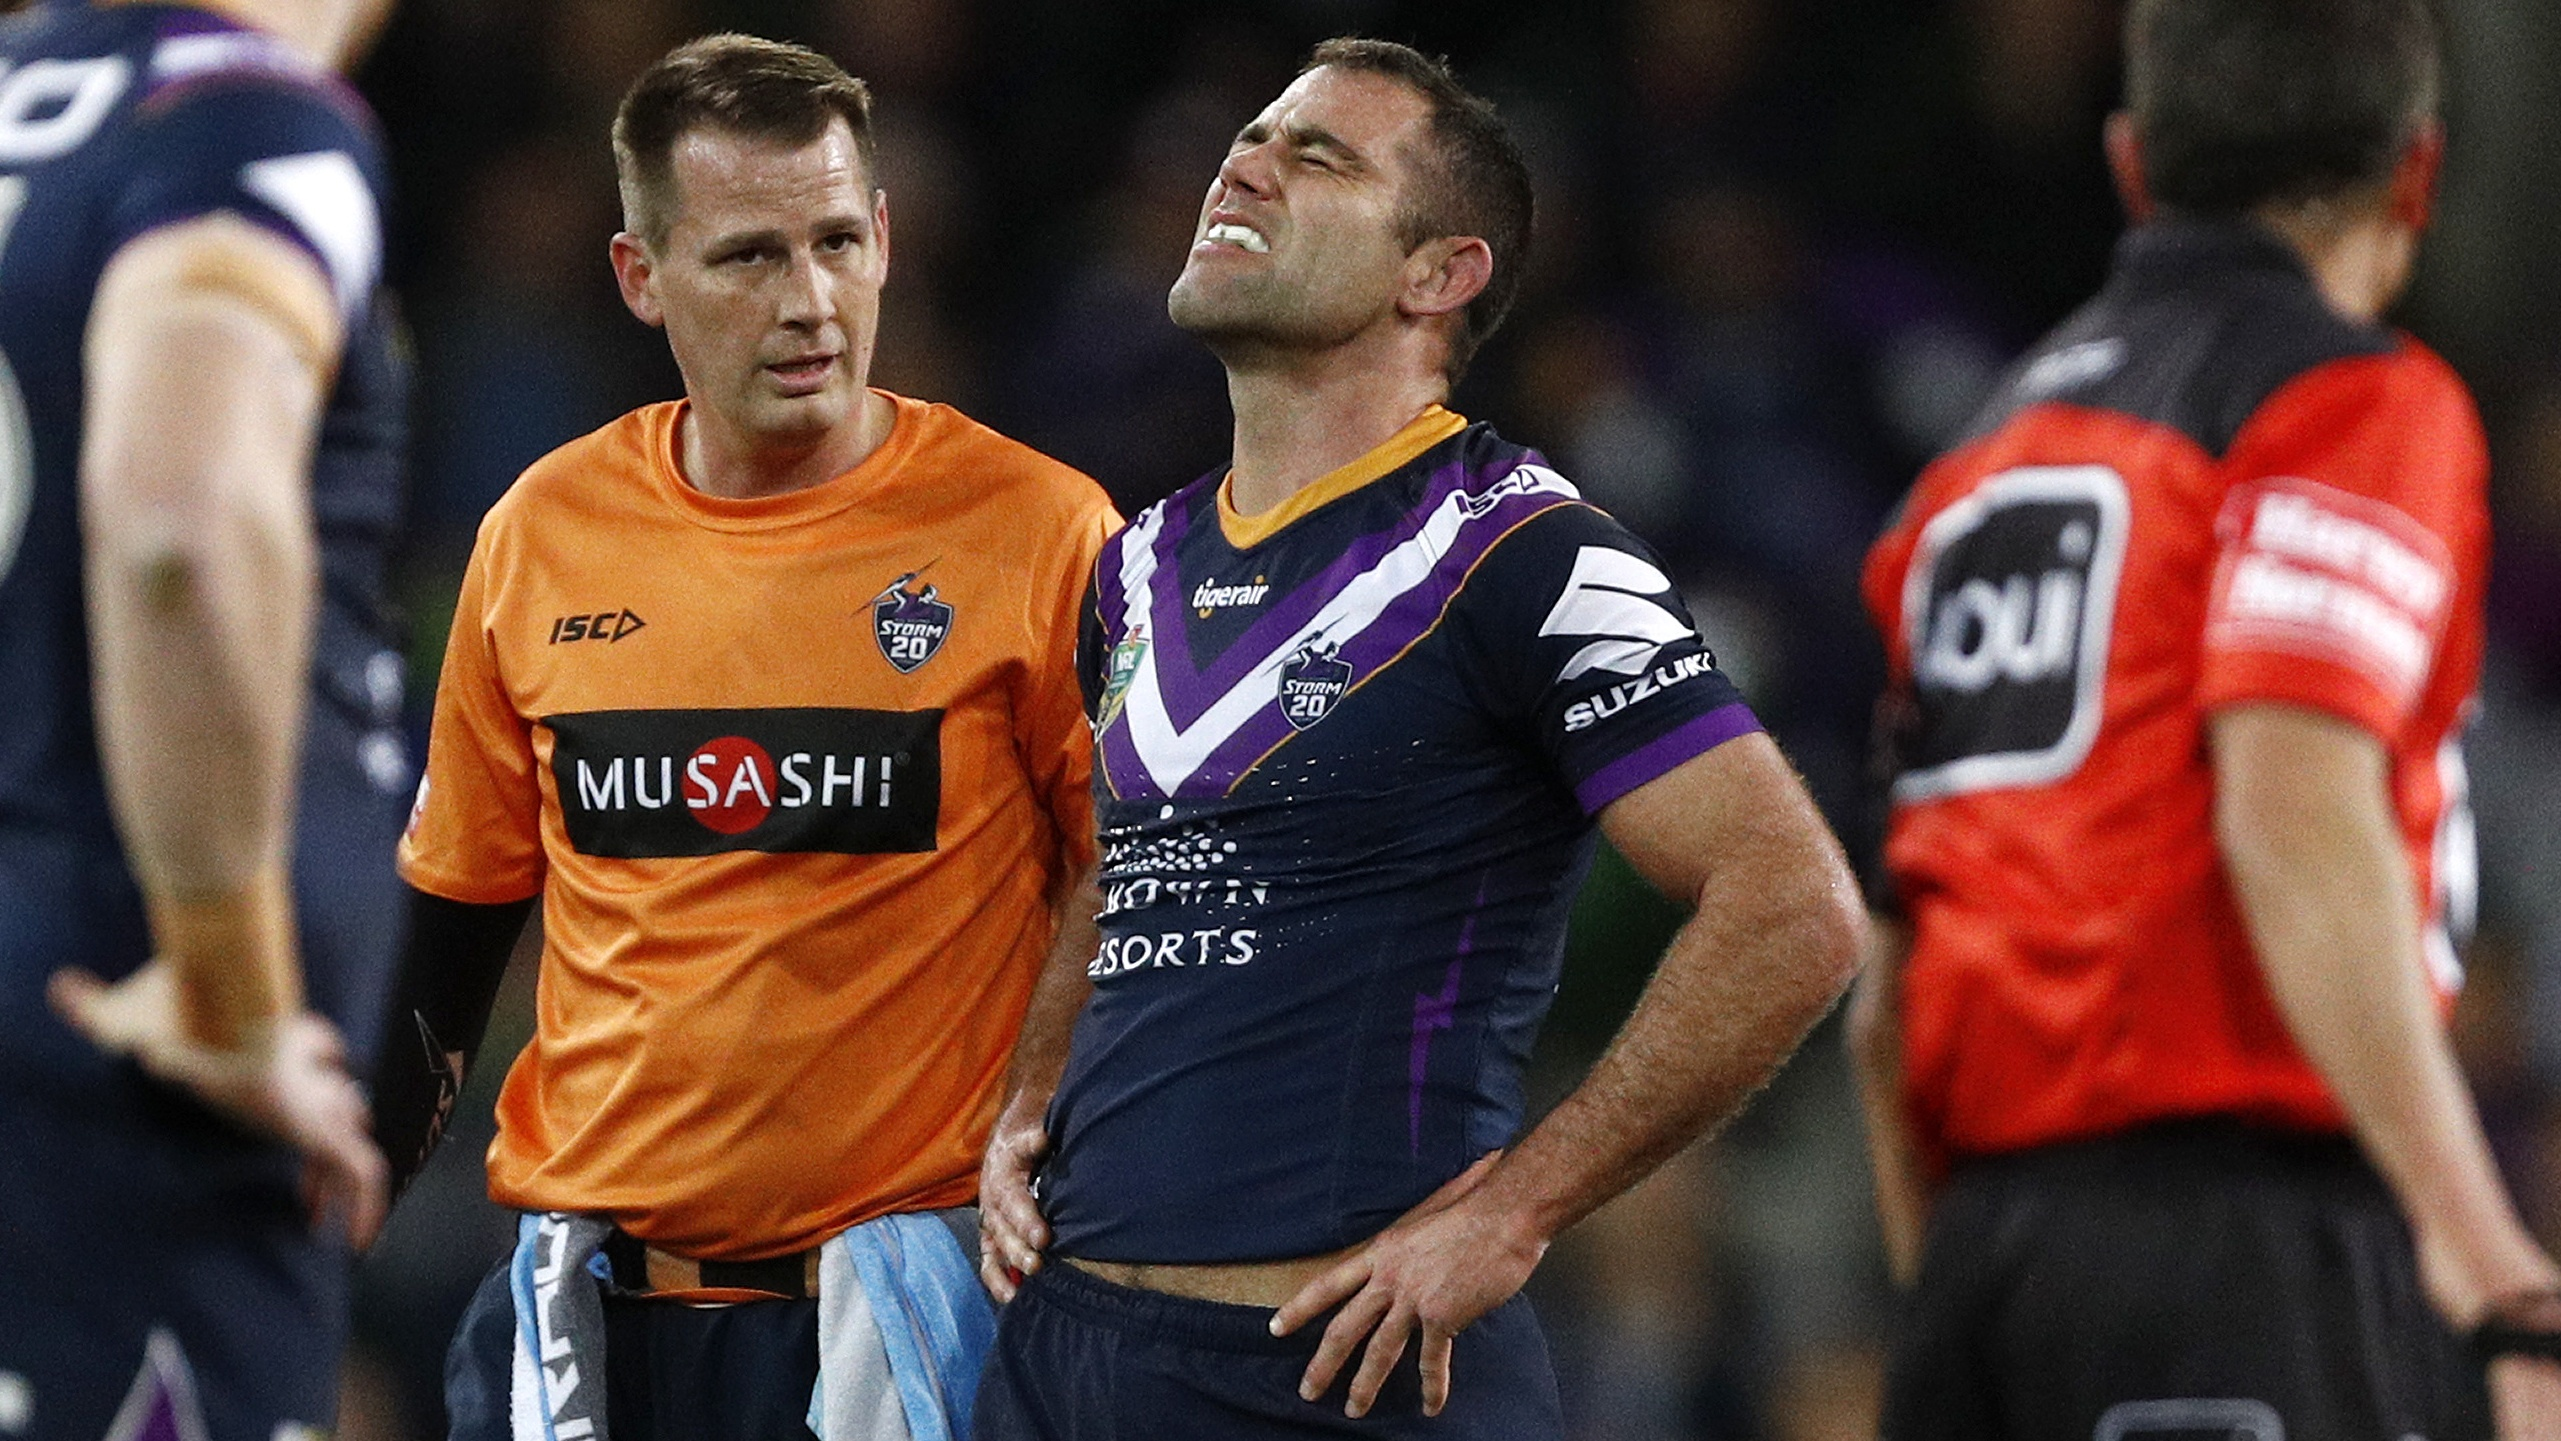 There's no way I would risk playing Cameron Smith: Johns